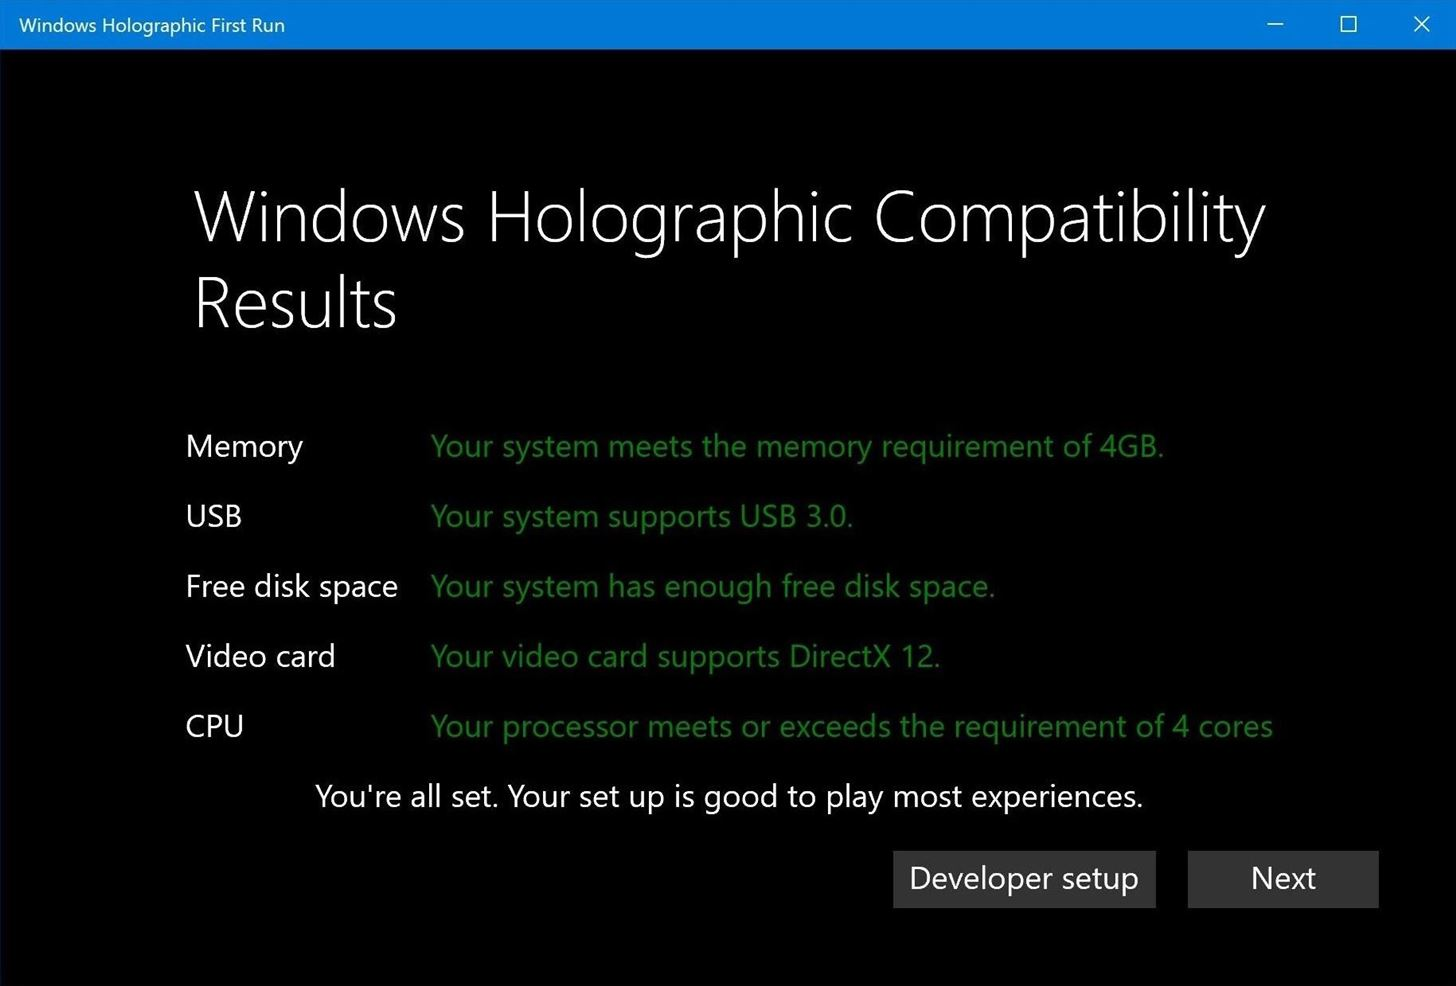 Windows Holographic Lands in Windows 10 Insider Build 14971